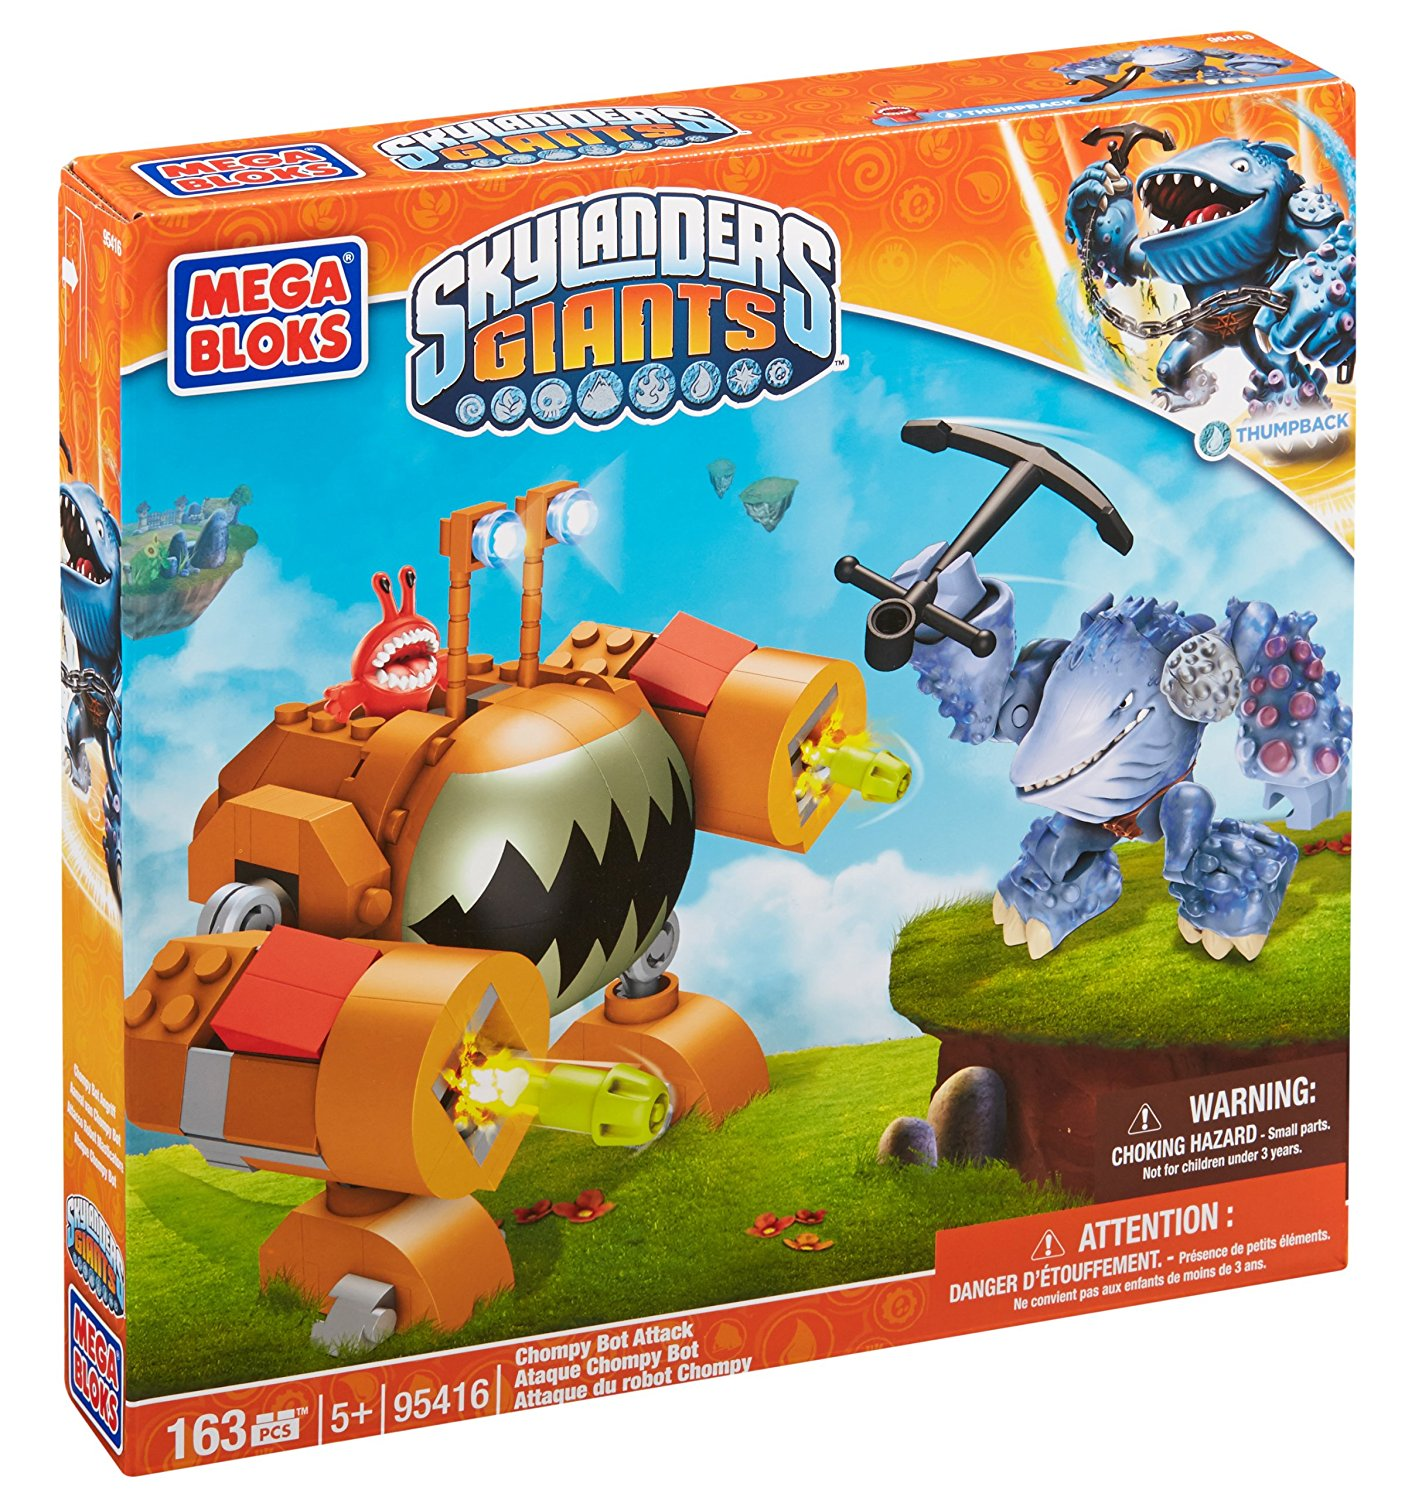 Skylanders Chompy Bot Attack, Buildable enemy mech with Red Chompy driver By Mega Bloks Ship from US